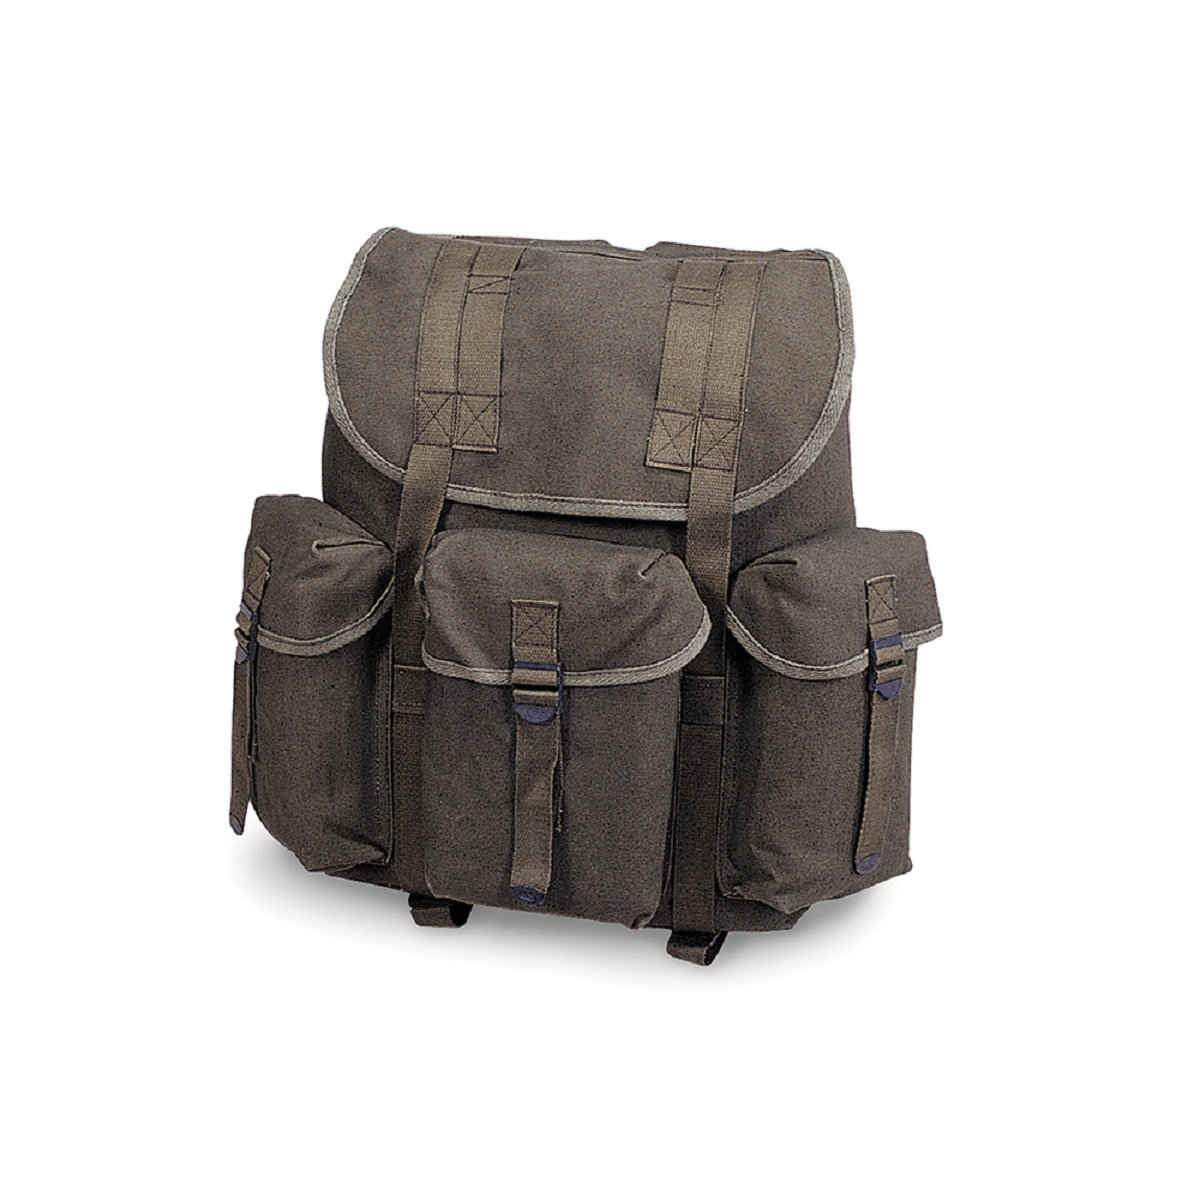 COTTON G.I. RUCKSACK - O.D., Case of 12 by DollarItemDirect